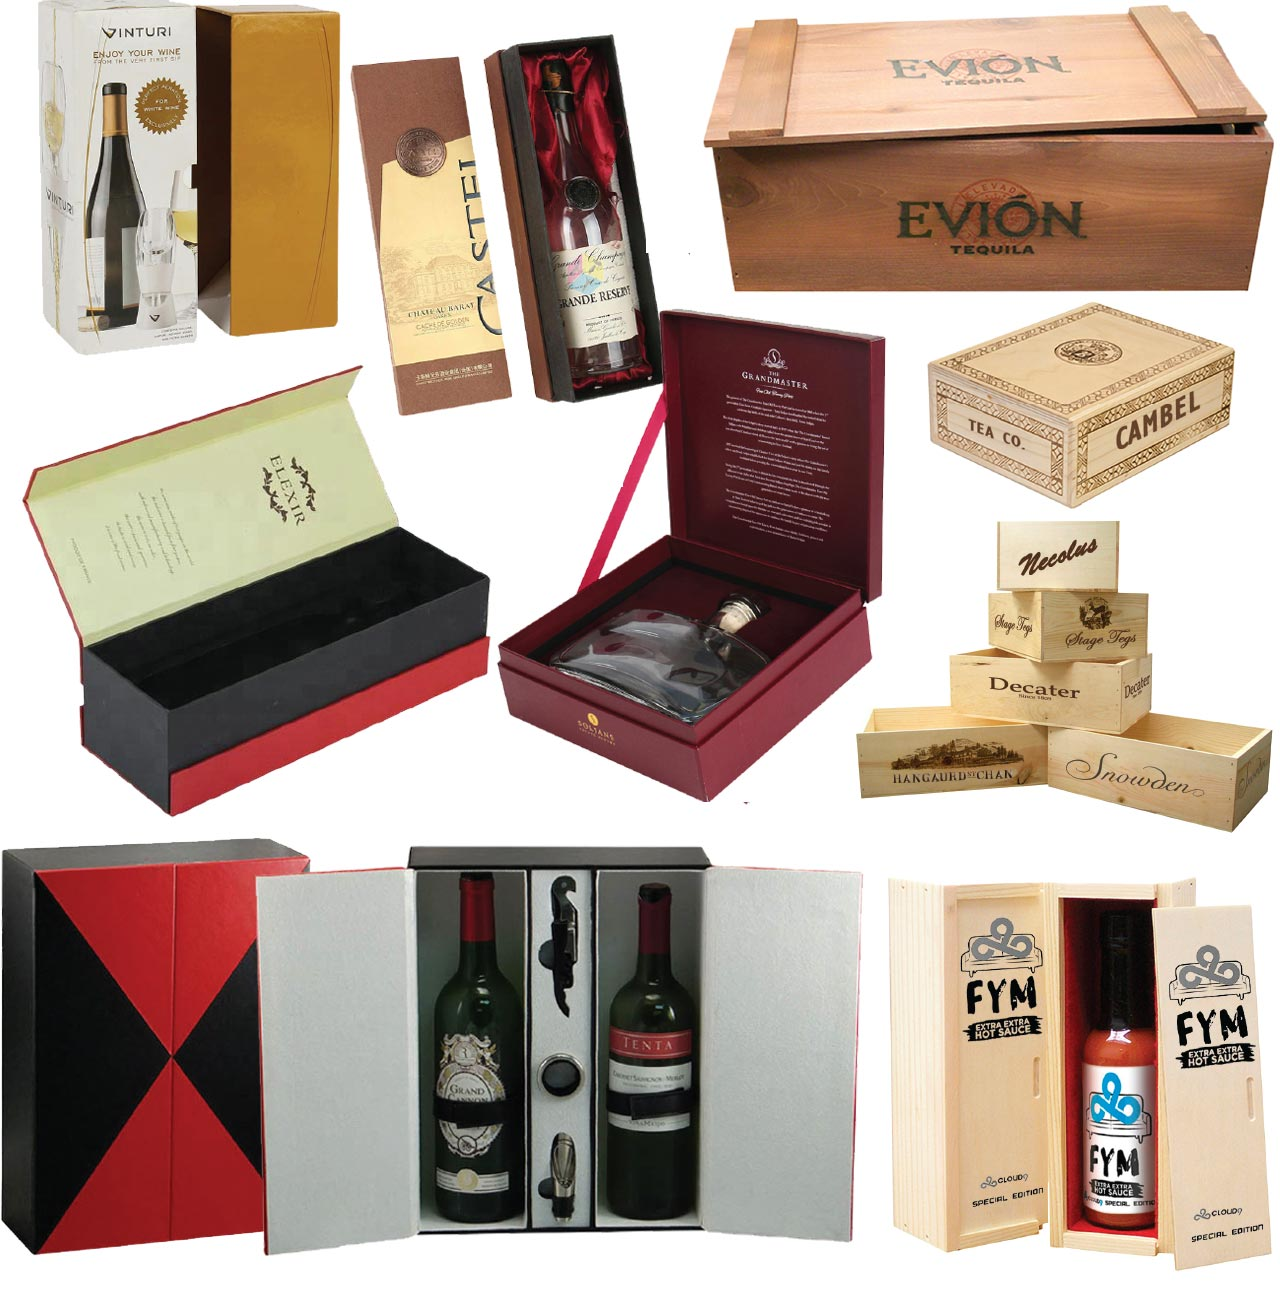 Wald Imports Special Order Wine and Spirits Boxes